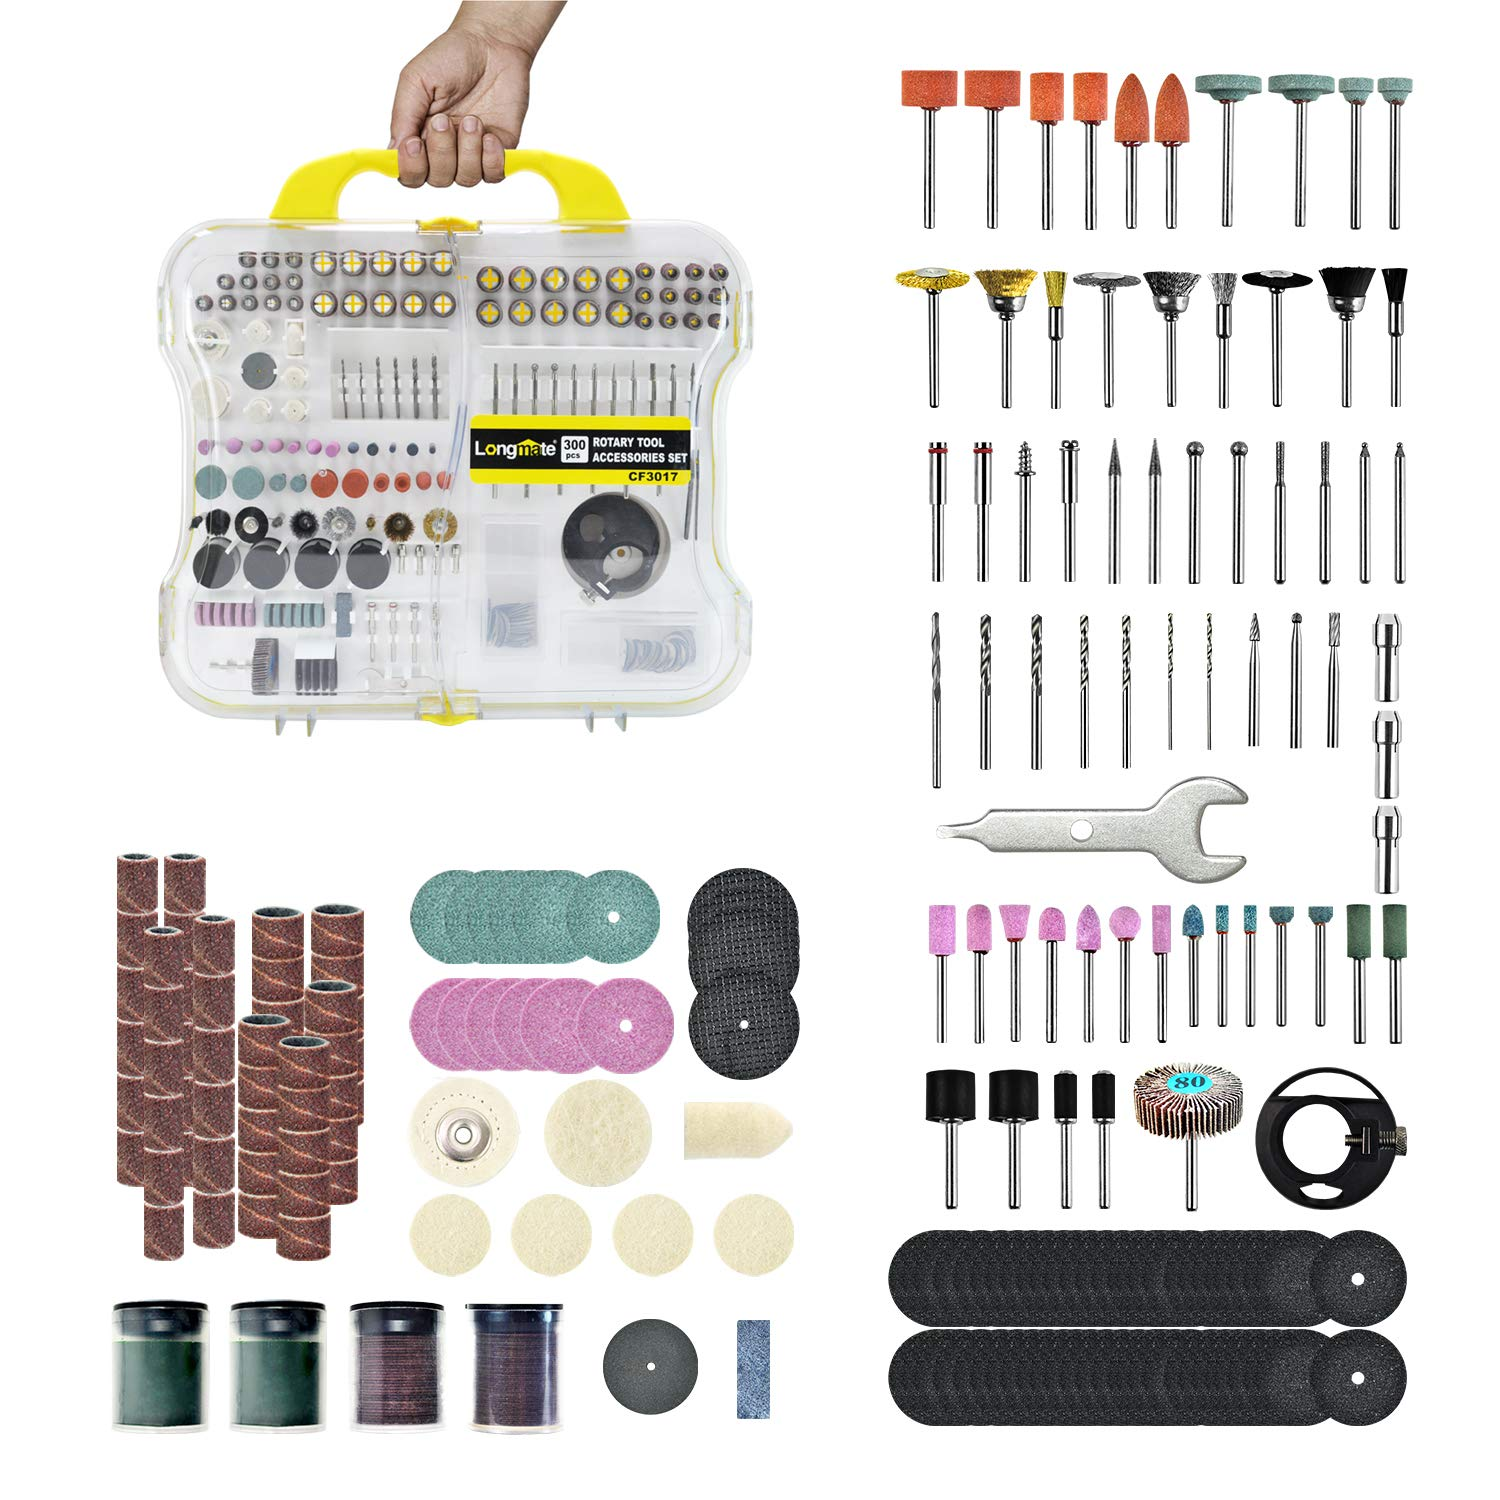 Longmate 300 PCS Rotary Tool Accessories Kit Universal Fitment for Easy Cutting, Carving, Grinding, Sanding and Polishing by Longmate (Image #1)